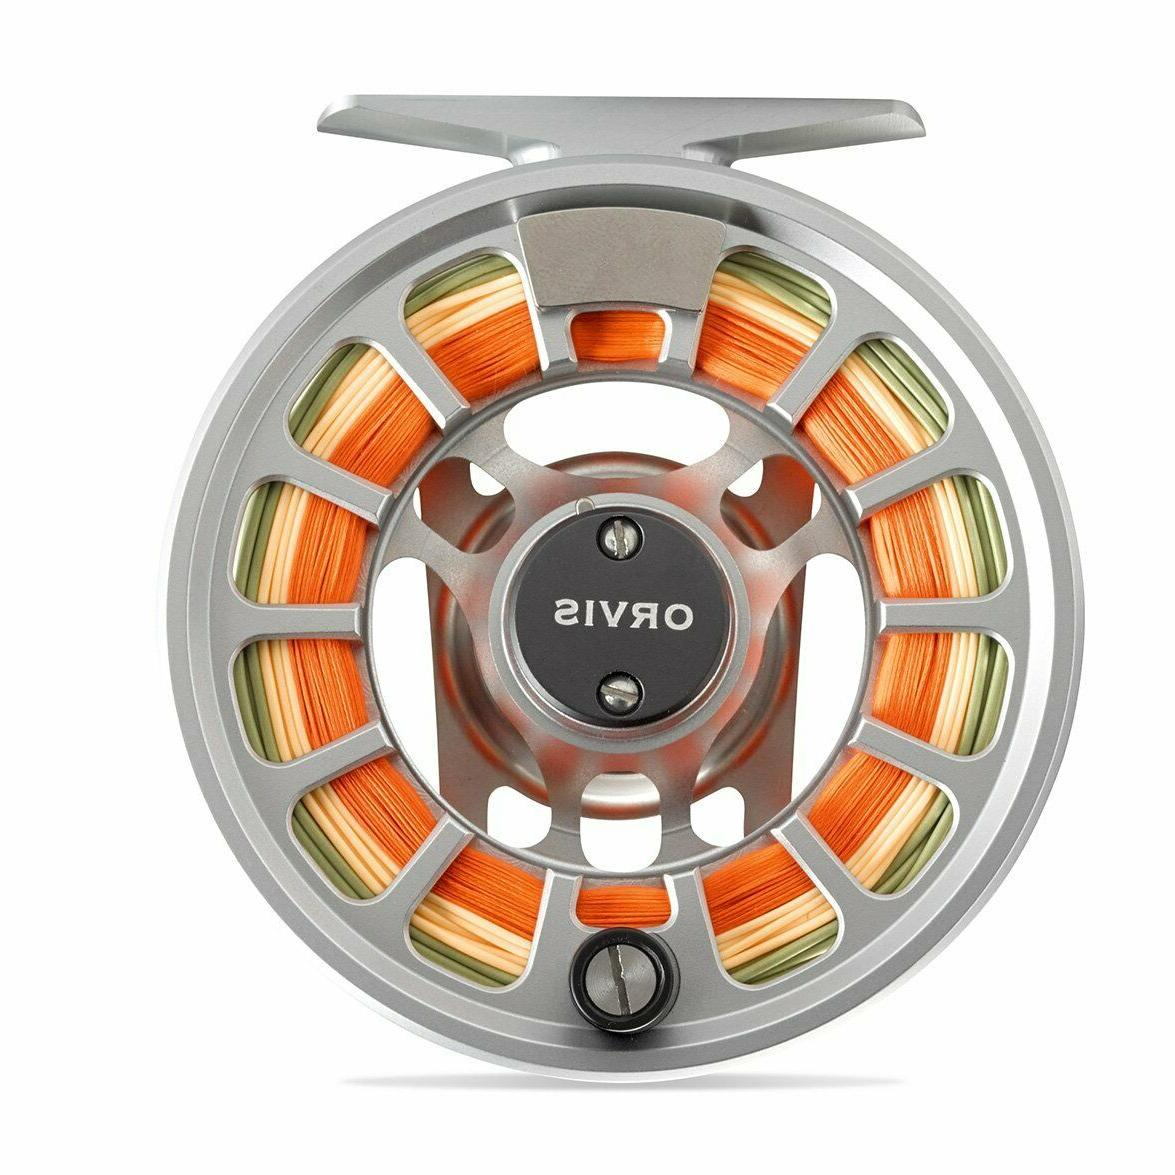 NEW HYDROS FLY REEL IN FOR 3, 4 OR 5 FREE US